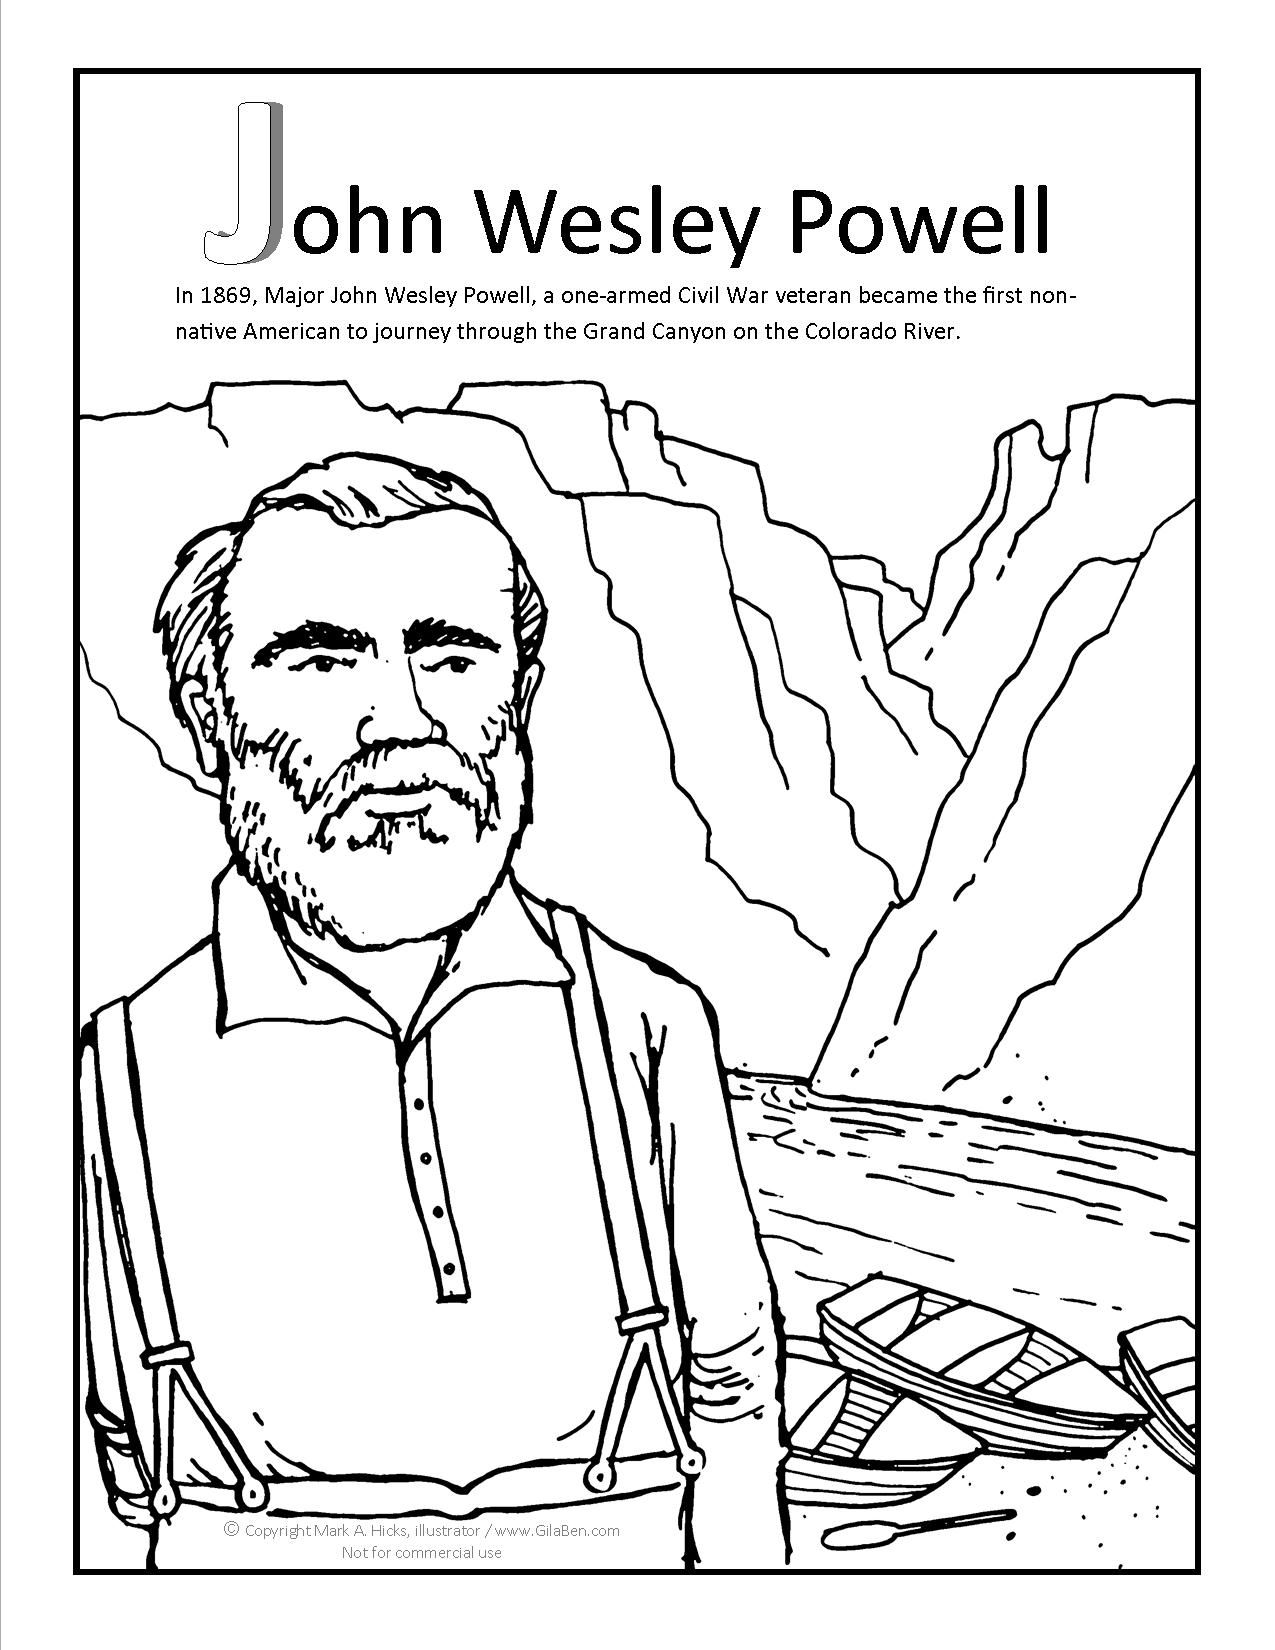 John Wesley Powell Coloring Page At Gilaben